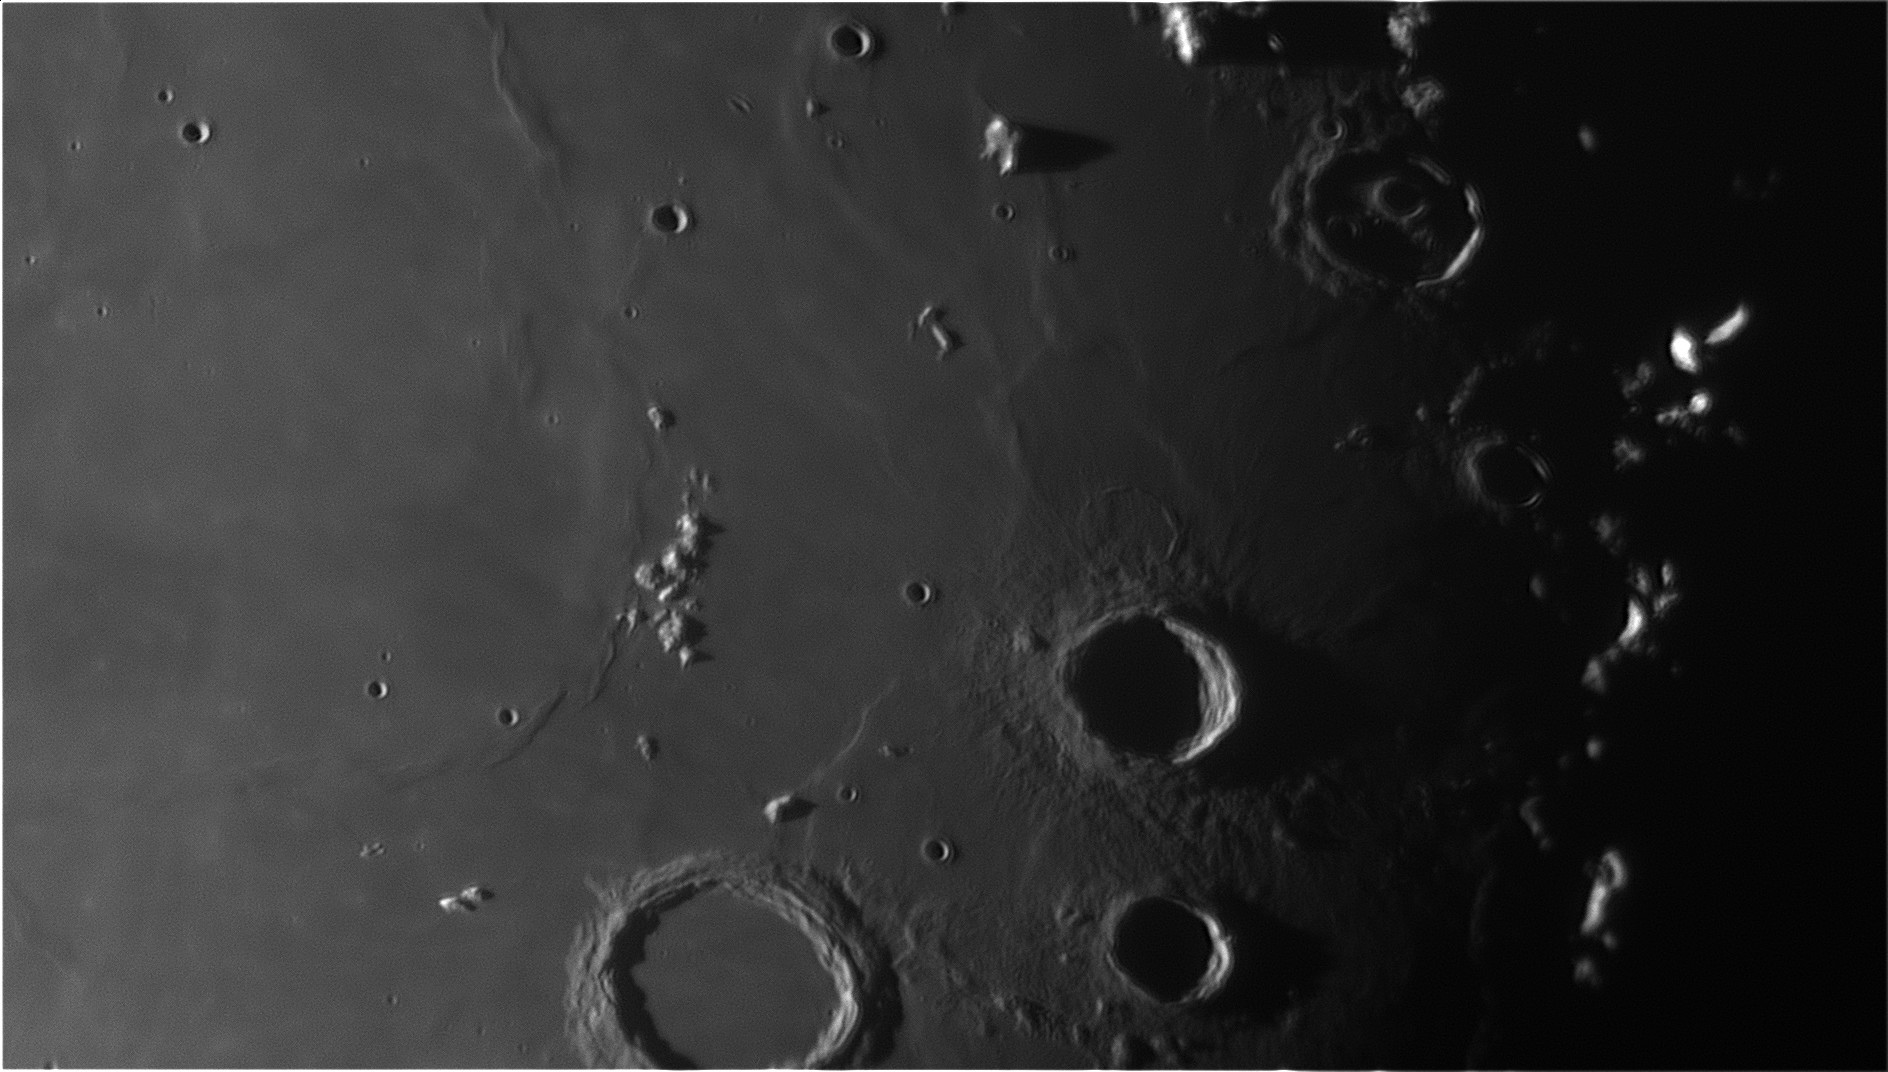 5d96466feb4fa_Moon_063221_210919_ZWOASI290MM_Rouge_23A_AS_P40_lapl6_ap681.jpg.8aac50bfe50f94d4f58a69409e62bb04.jpg